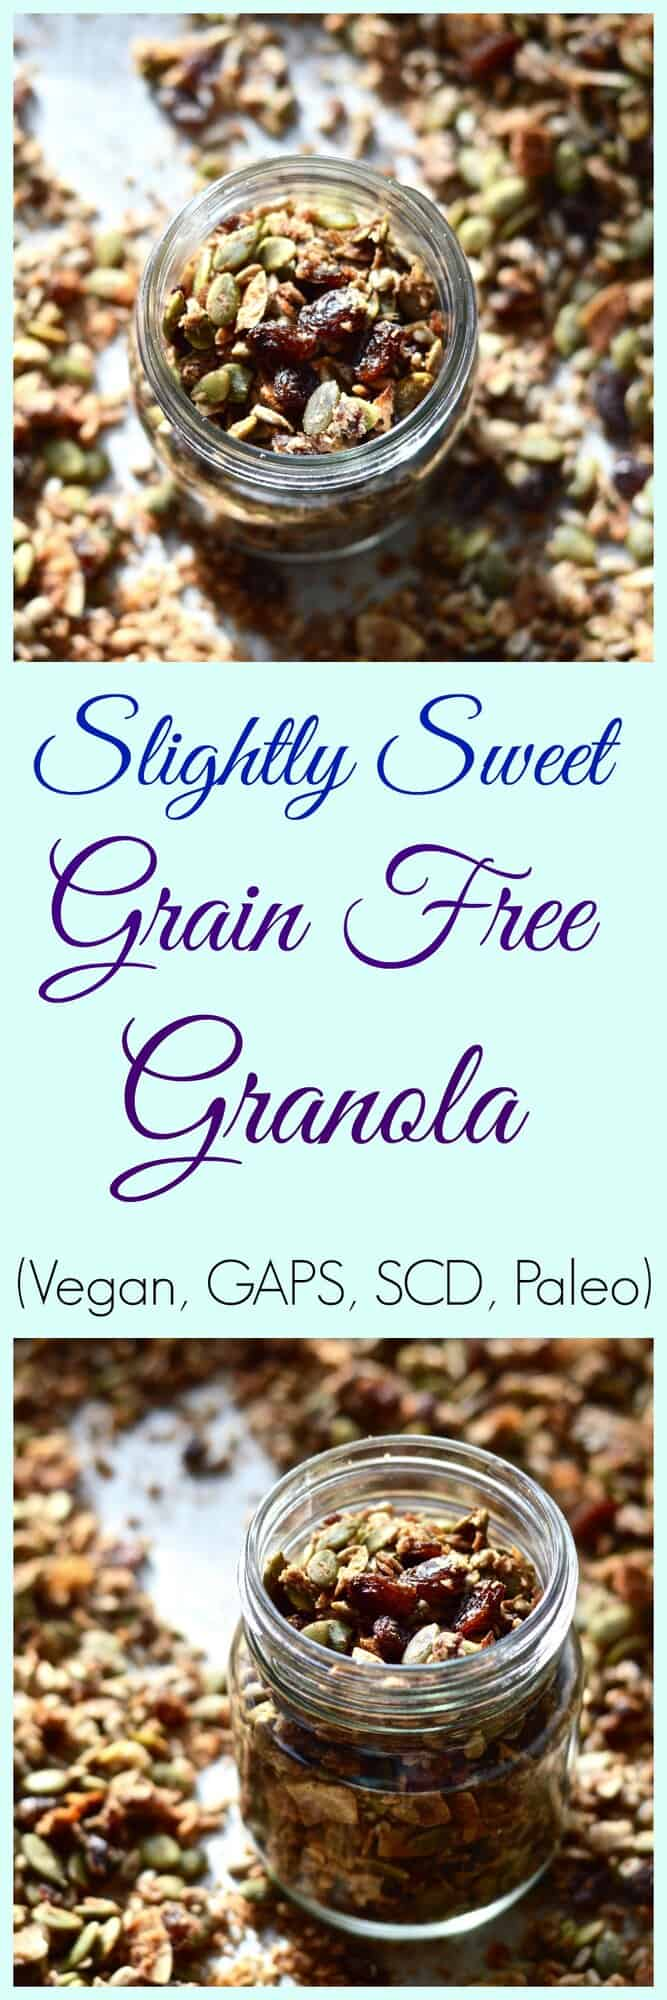 Slightly sweet grain free granola is the perfect simple, healthy gluten free granola. It's Whole30 and paleo and made with no sugar. Sweetened with dates, coconut and fruit you can snack on this vegan granola all day. #granola #glutenfree #grainfree #paleo